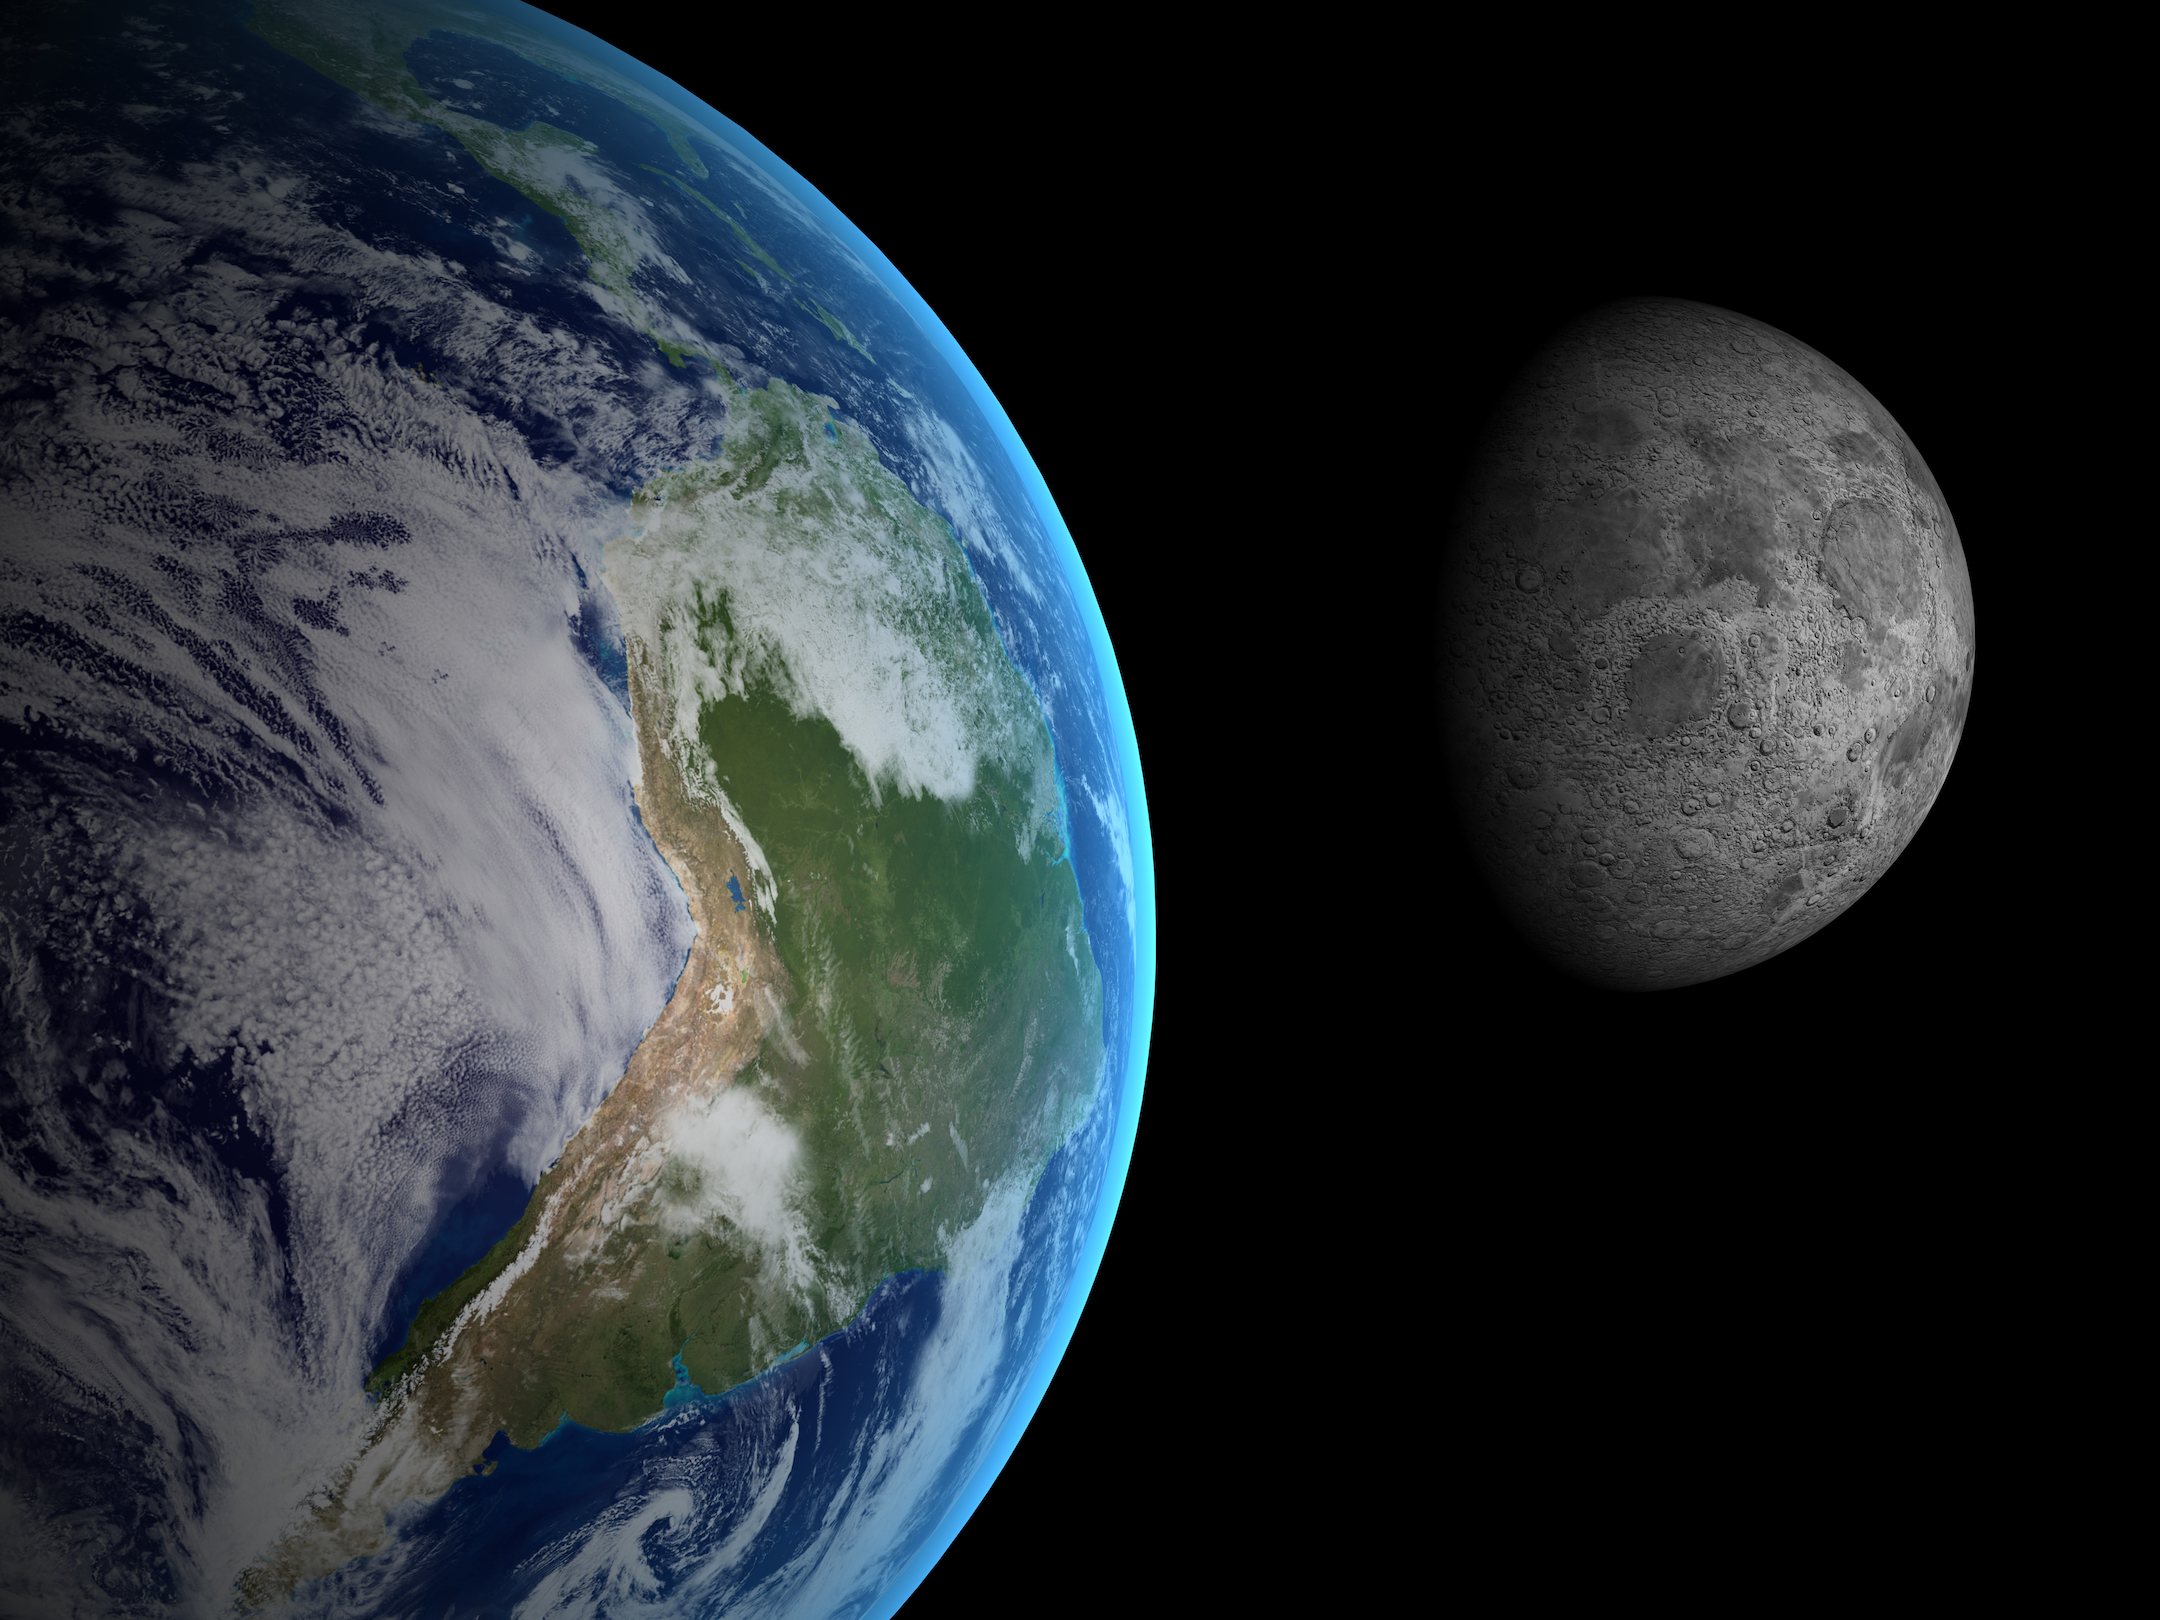 The moon was created by a giant protoplanet called Theia smashing into the Earth and creating debris that orbited the planet